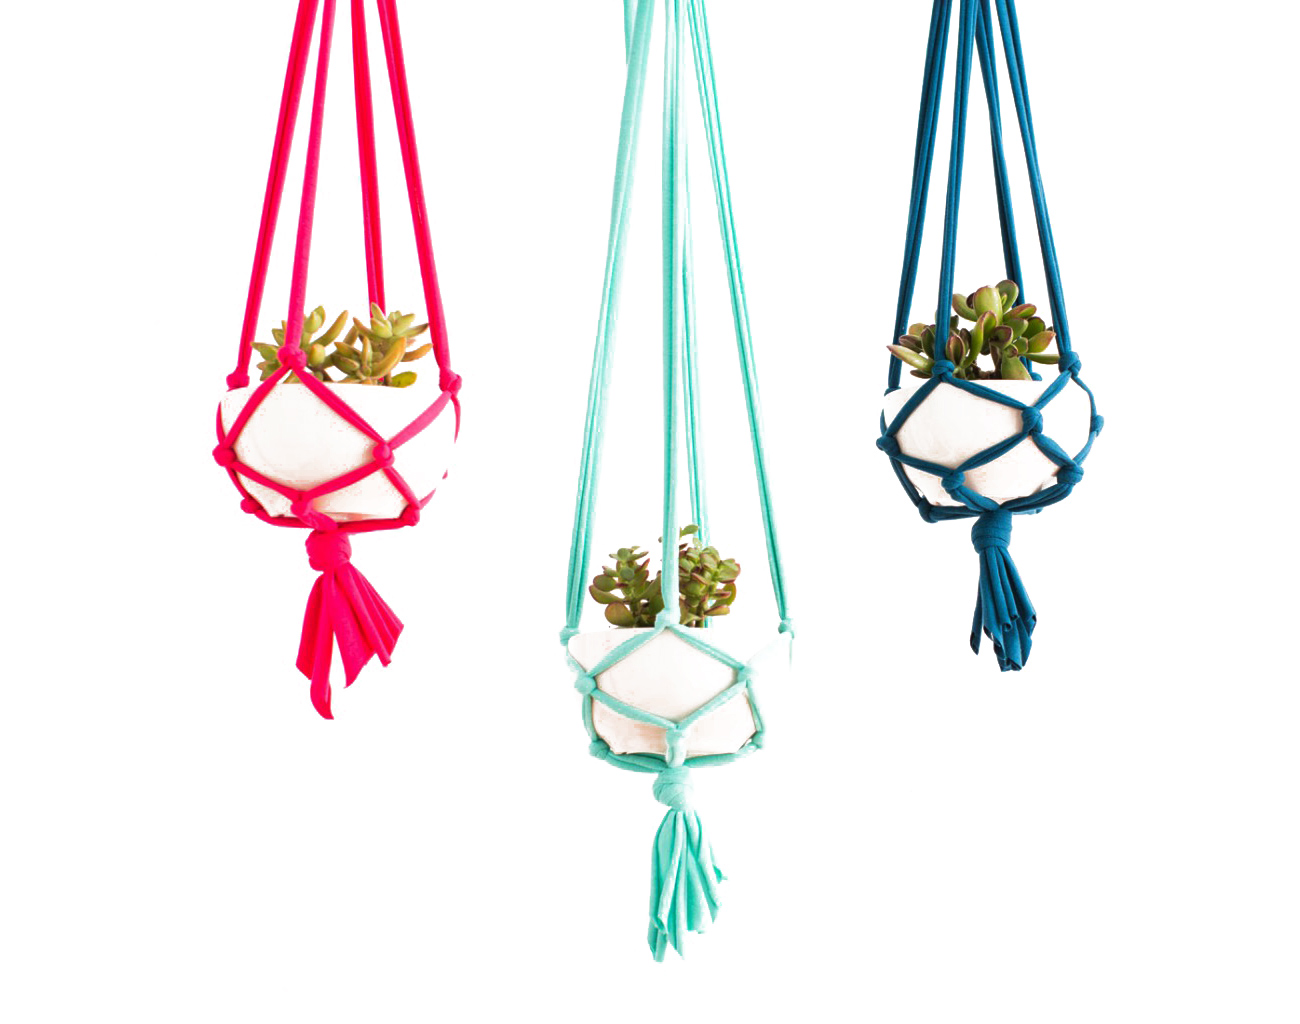 How-to-make-a-macrame-hanging-planter